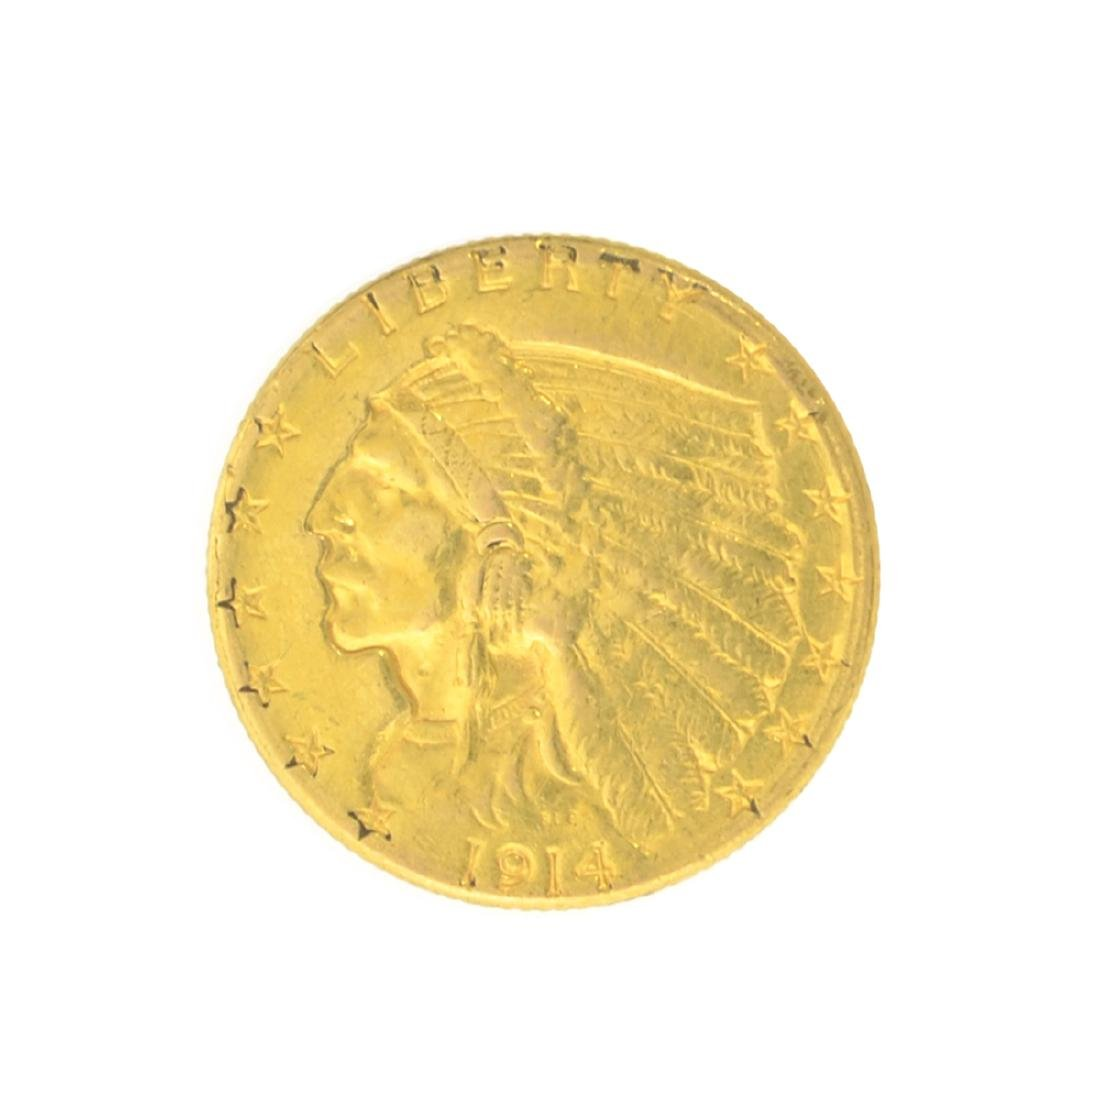 *1914-D $2.50 U.S. Indian Head Gold Coin - Great